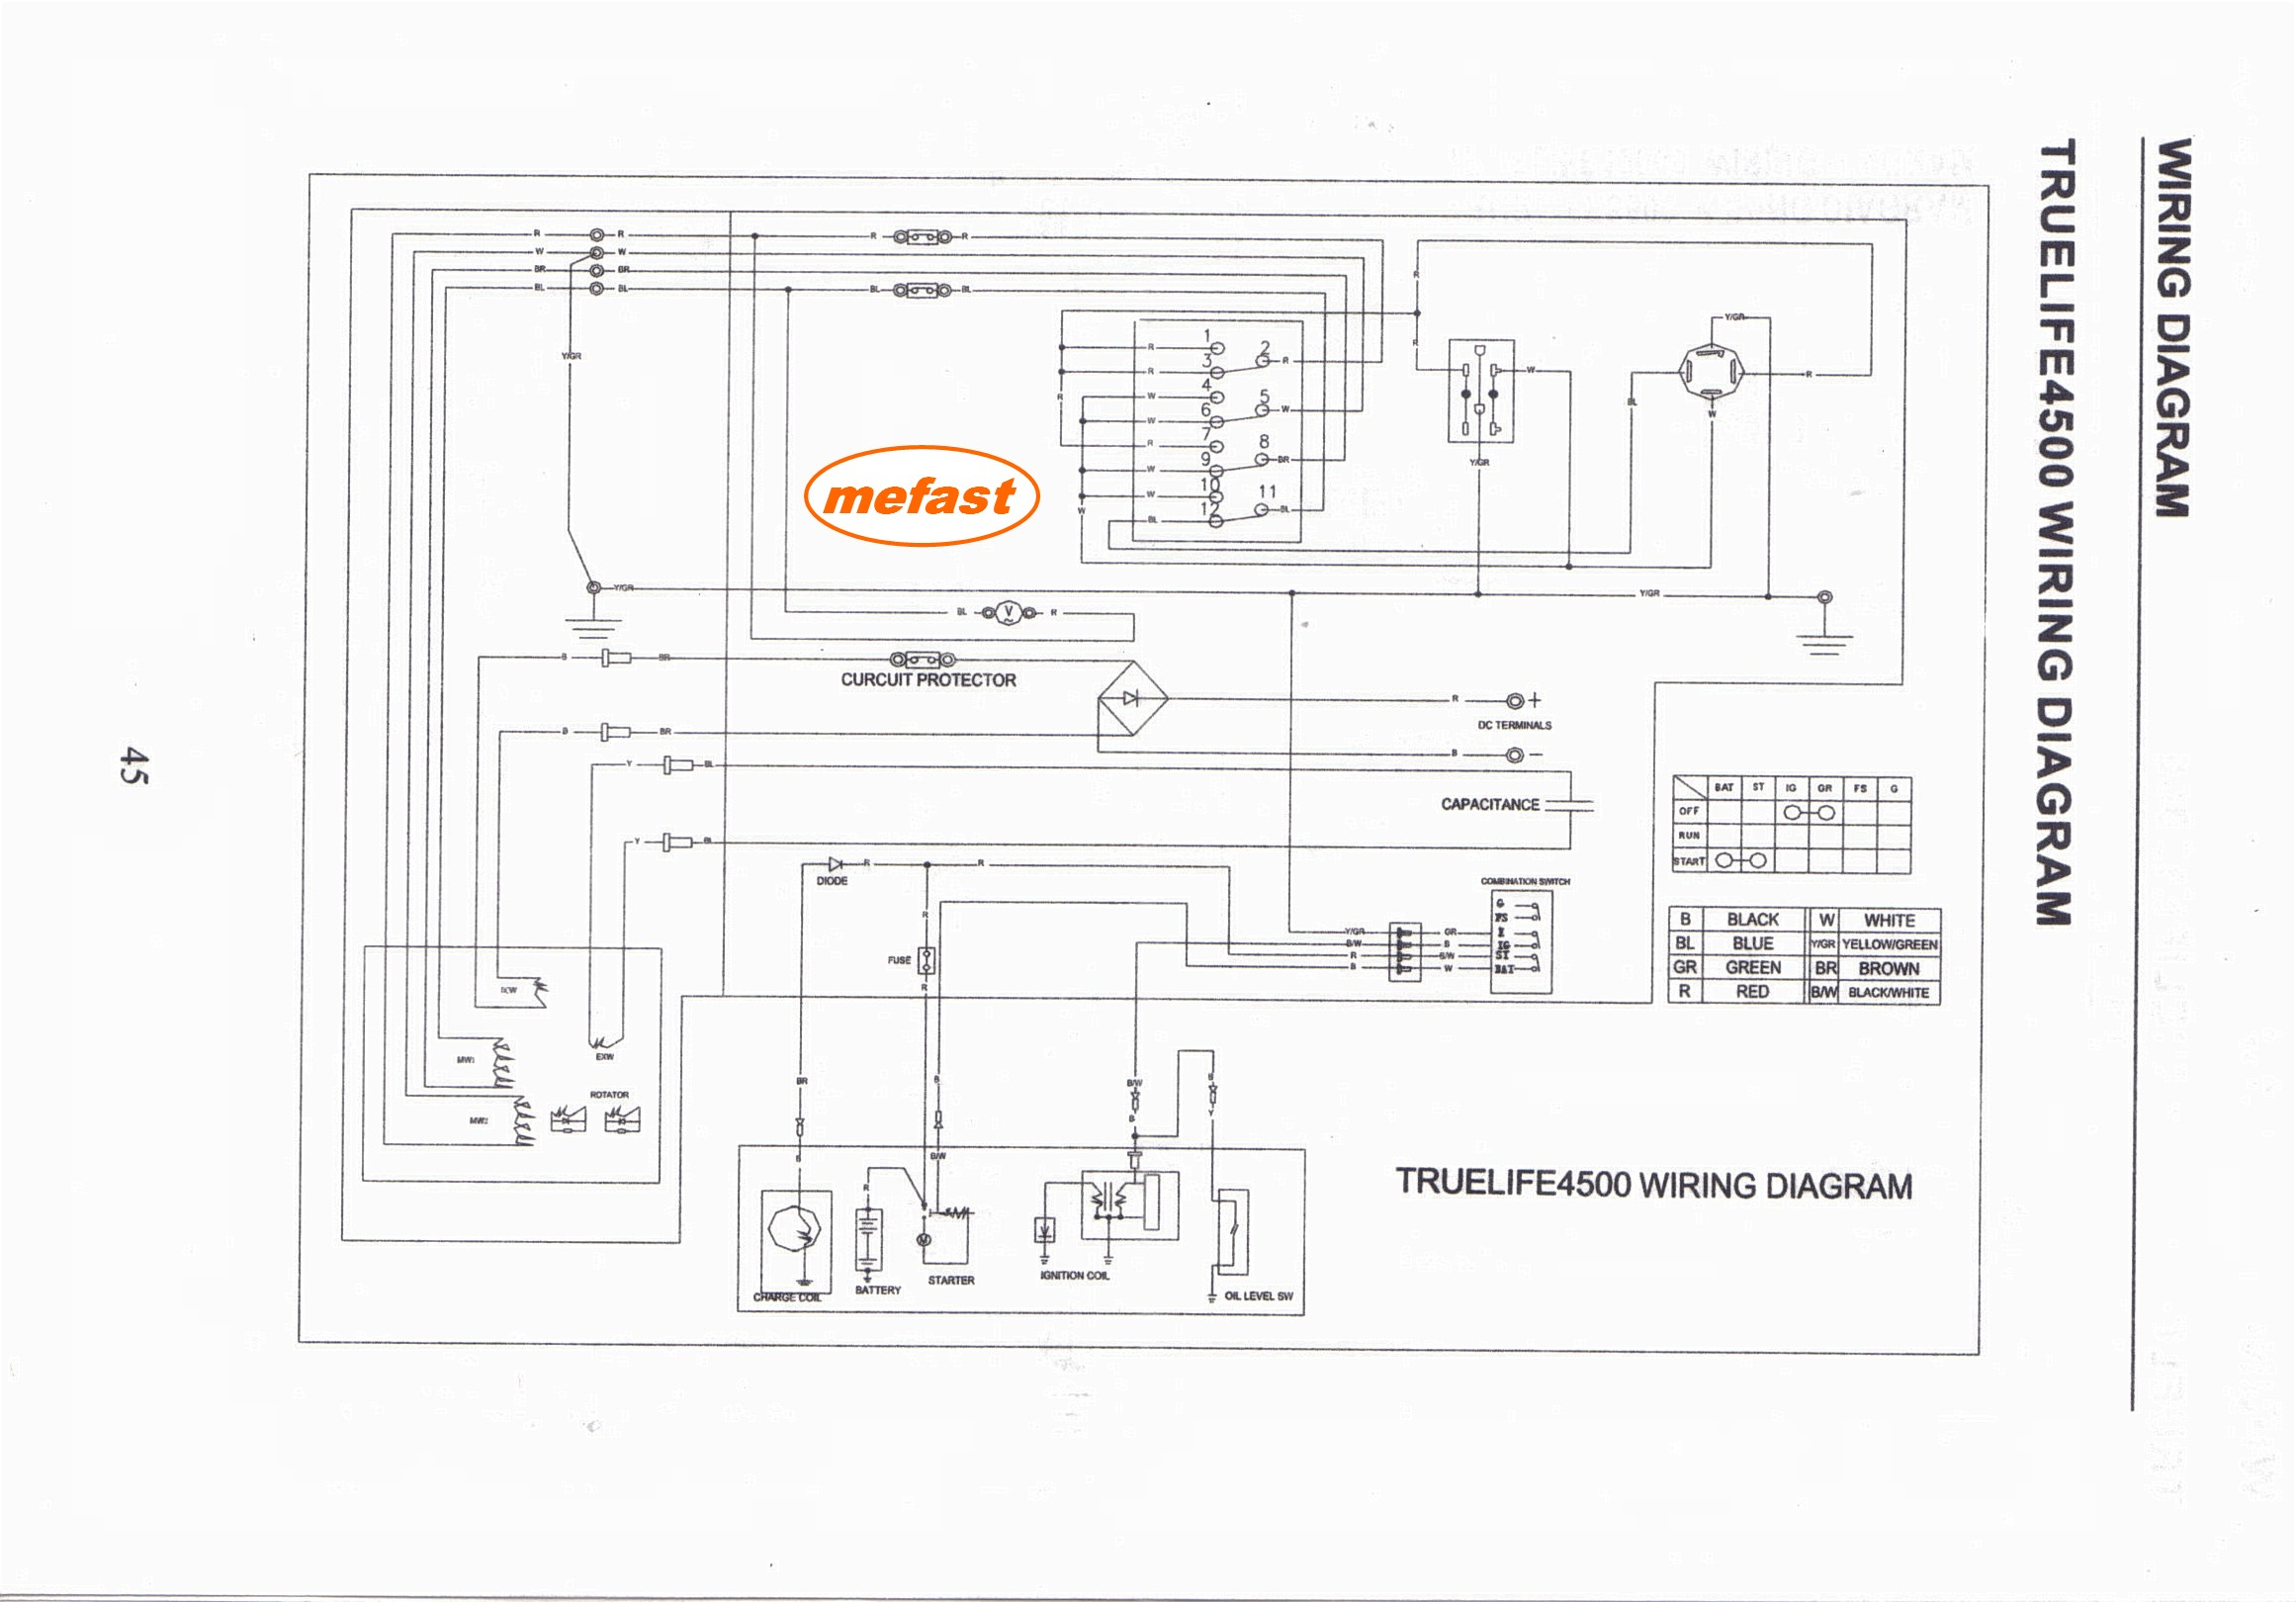 Truelife Generator Wire Diagram